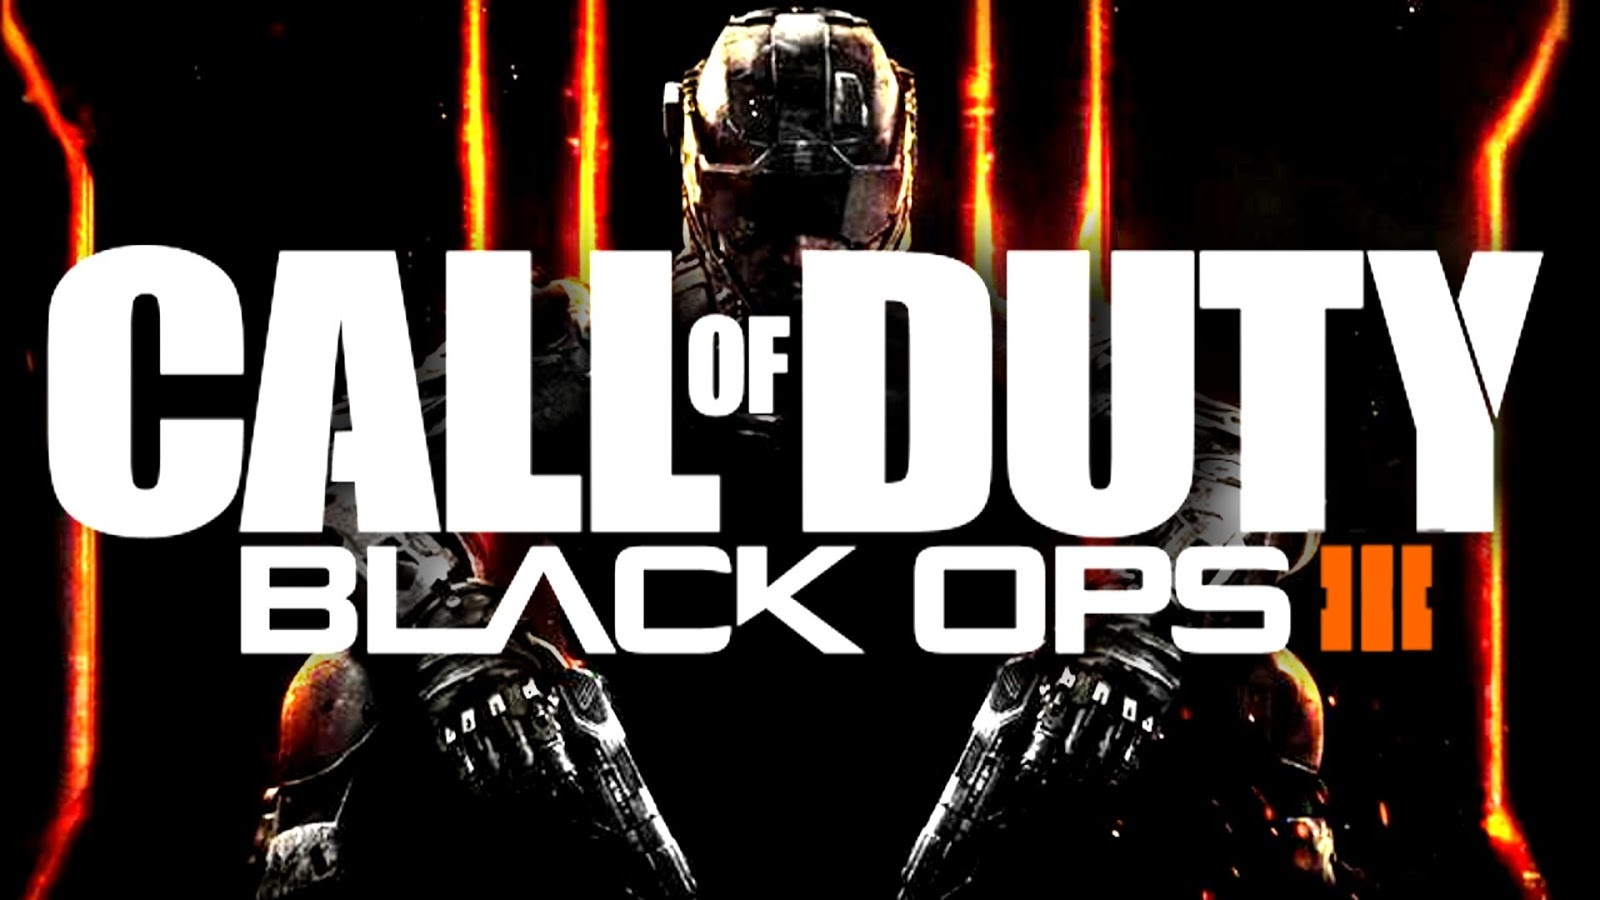 Call of Duty Black Ops 3 HD wallpapers download 1600x900